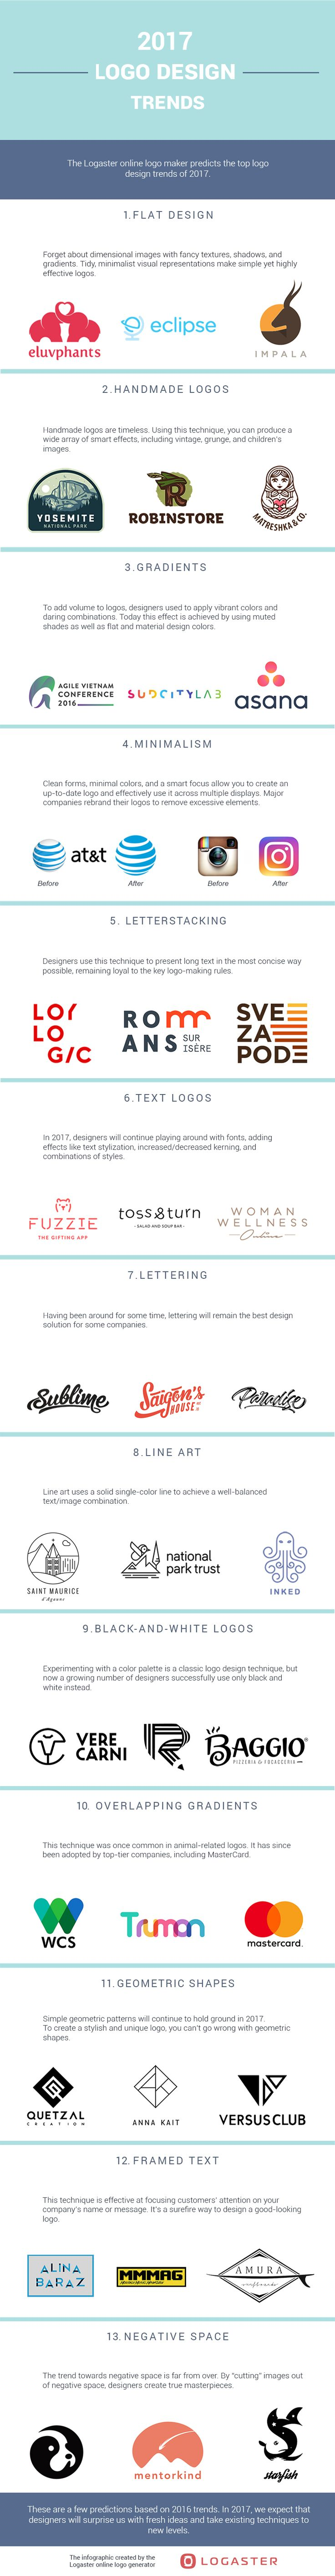 Logo Design Trends for 2017: Is Your Logo Up to Date?